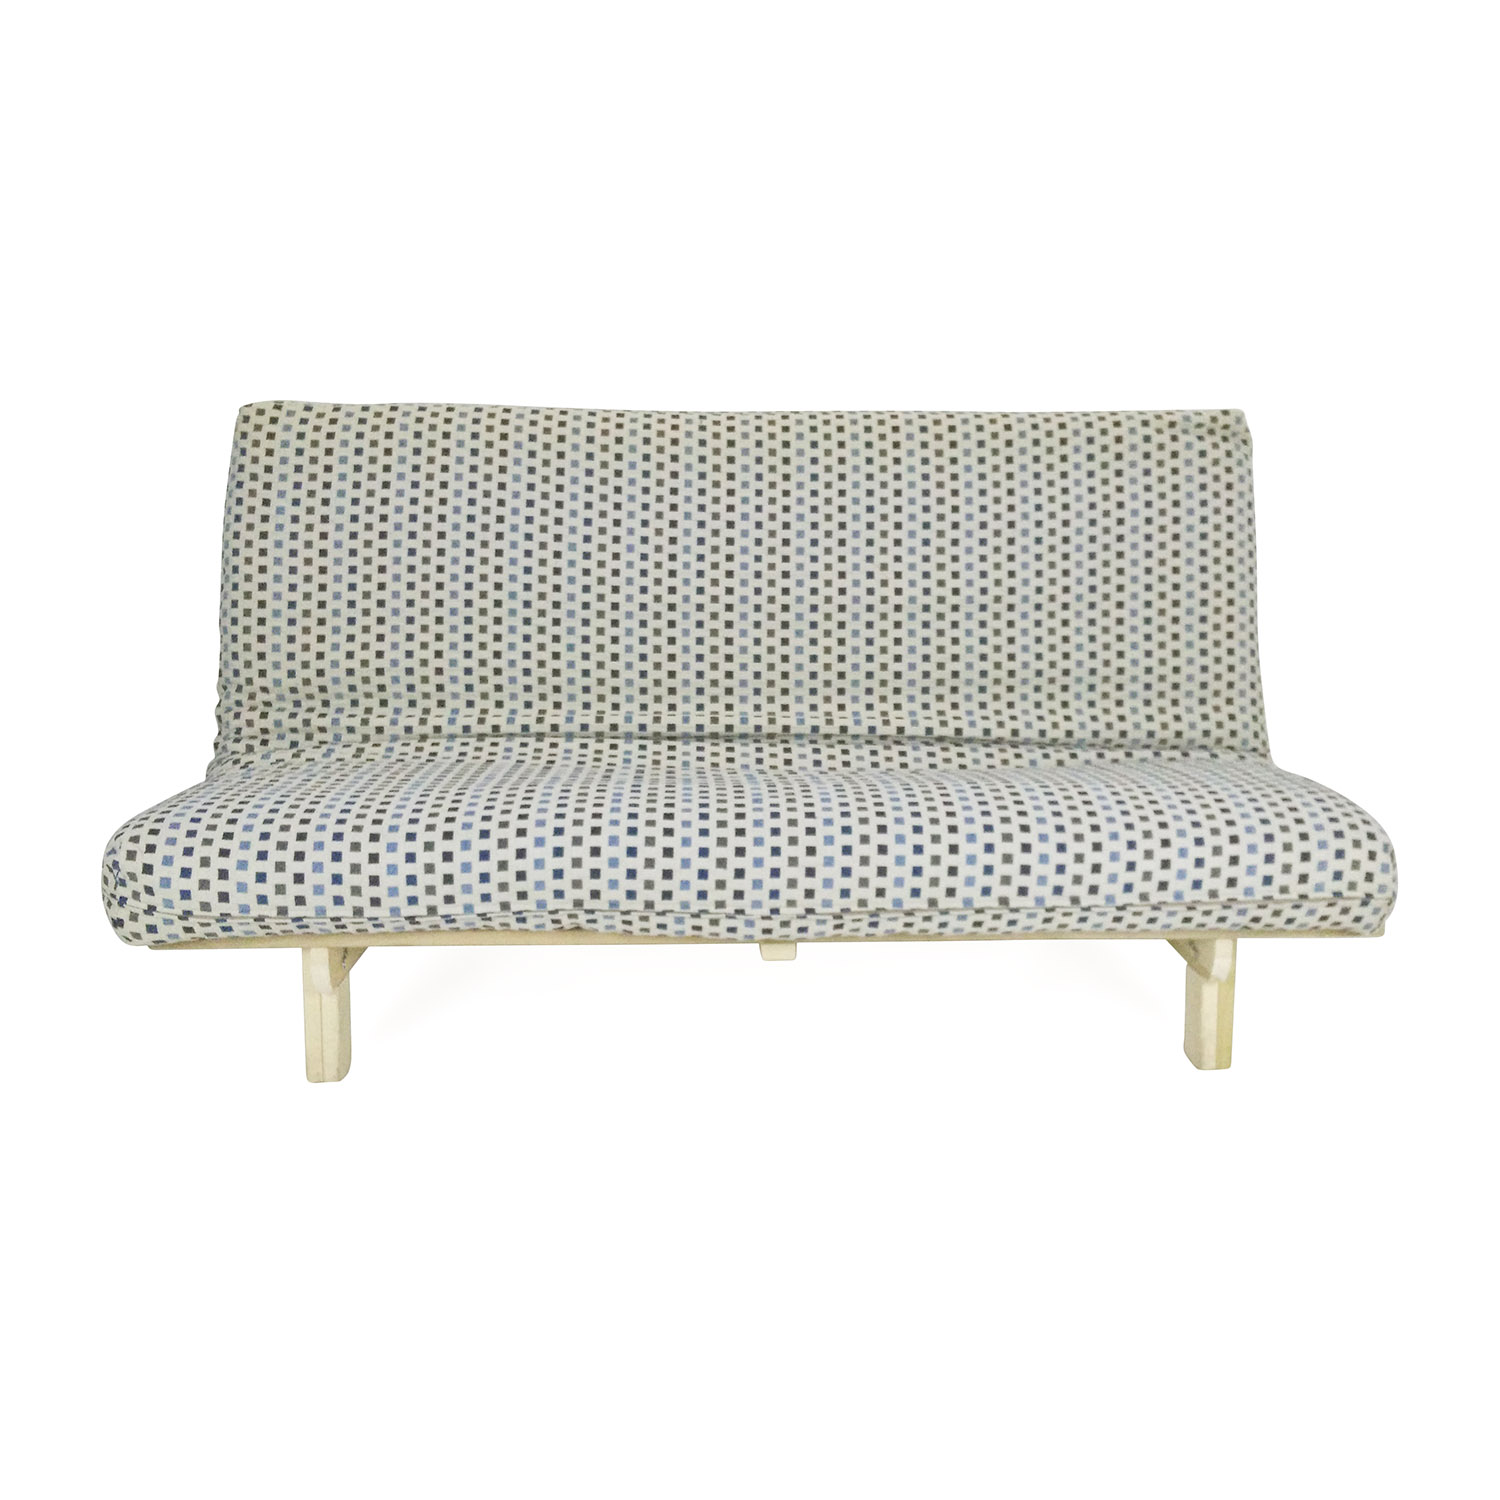 Comfy Futon Couch